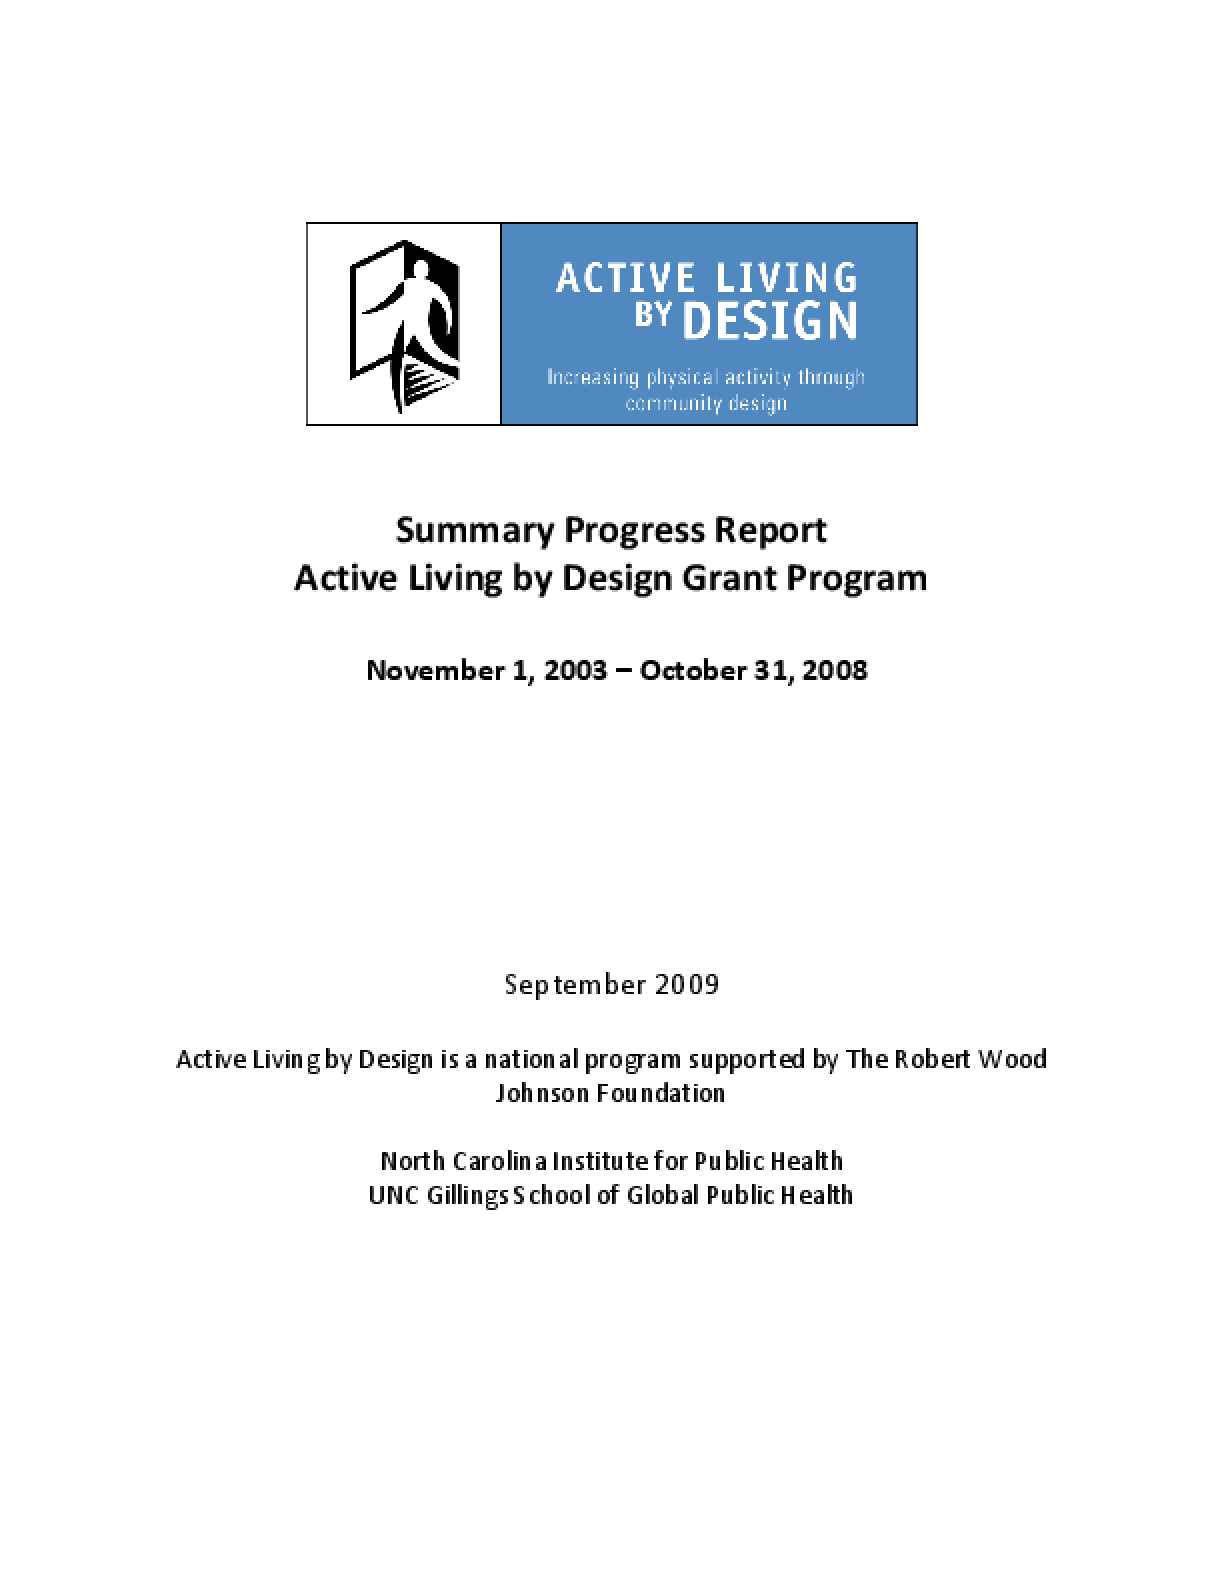 Summary Progress Report: Active Living by Design Grant Program